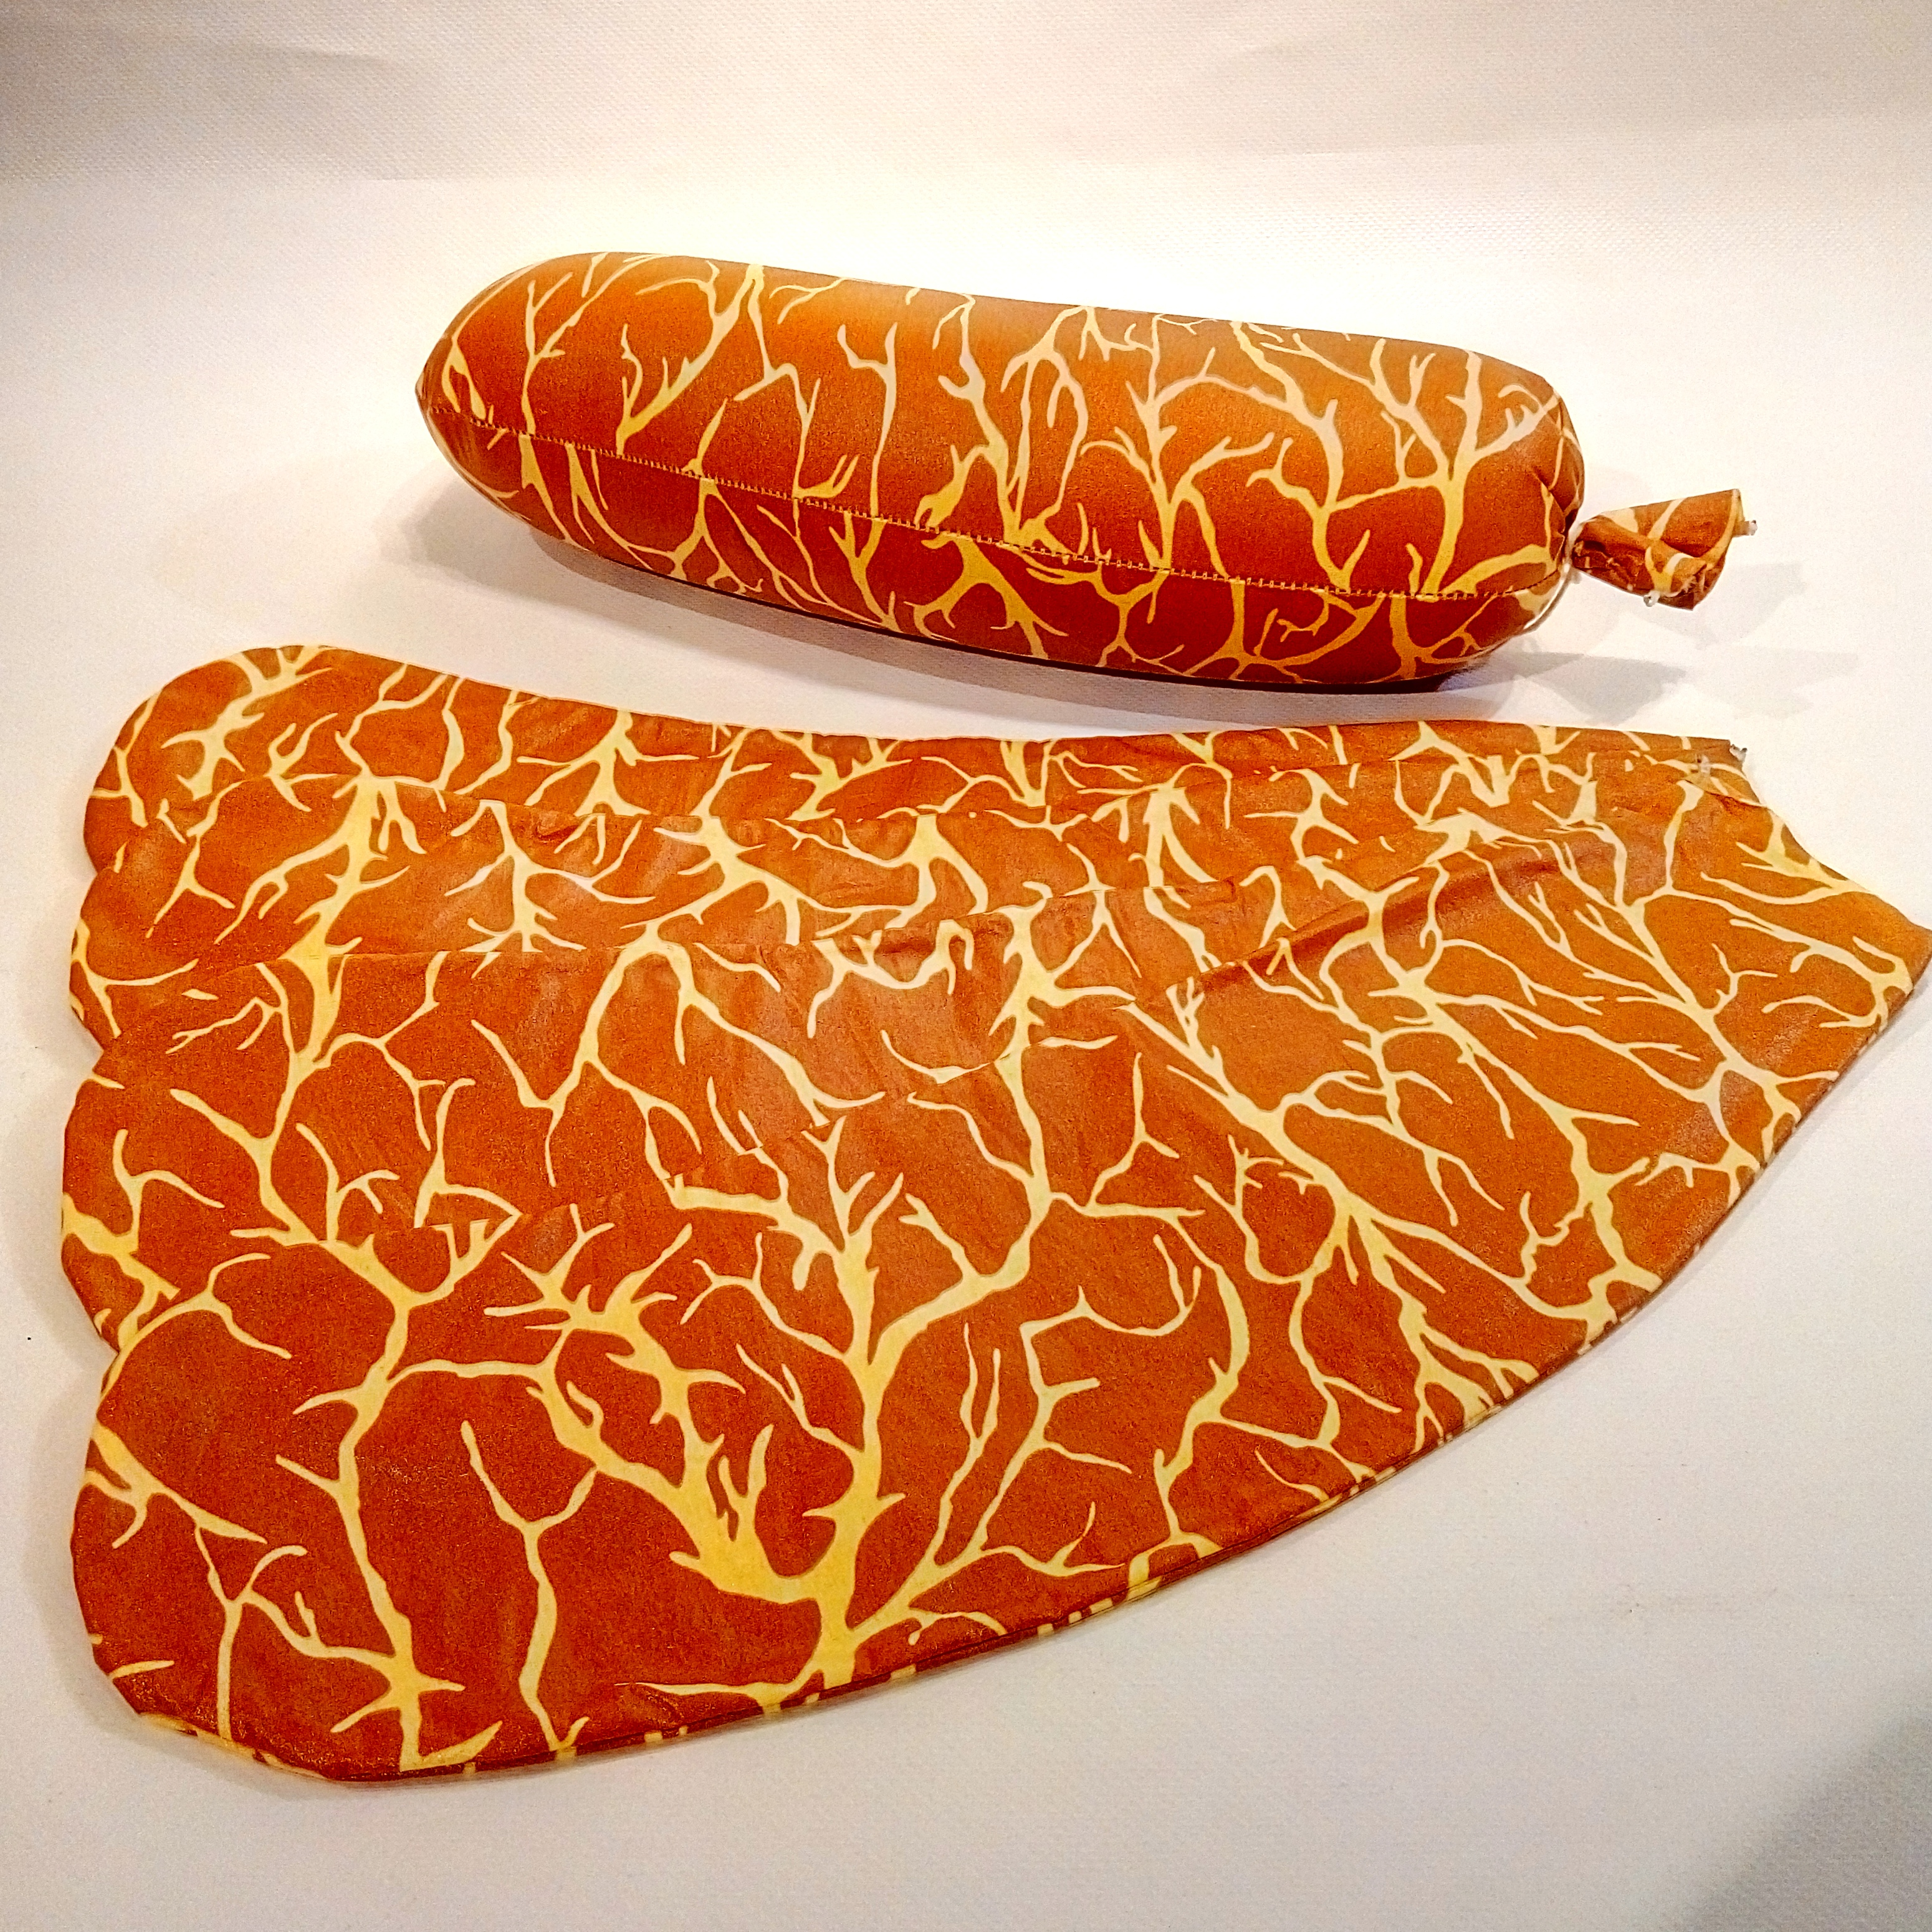 Craft textile sausage casings in the shape of beef blind gut image